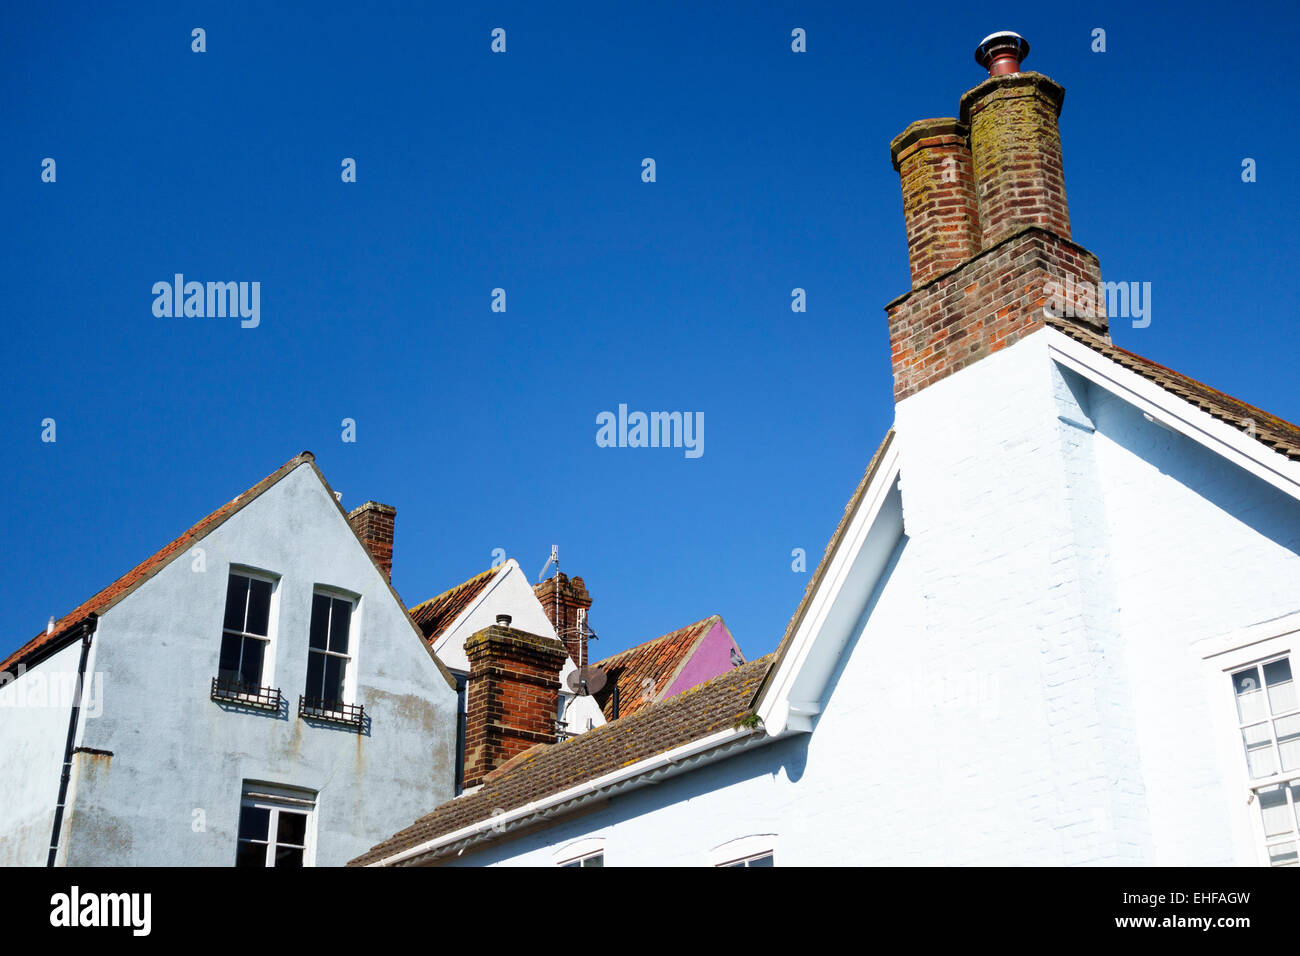 Aldeburgh, Suffolk, UK. Roofs of old houses in the town - Stock Image